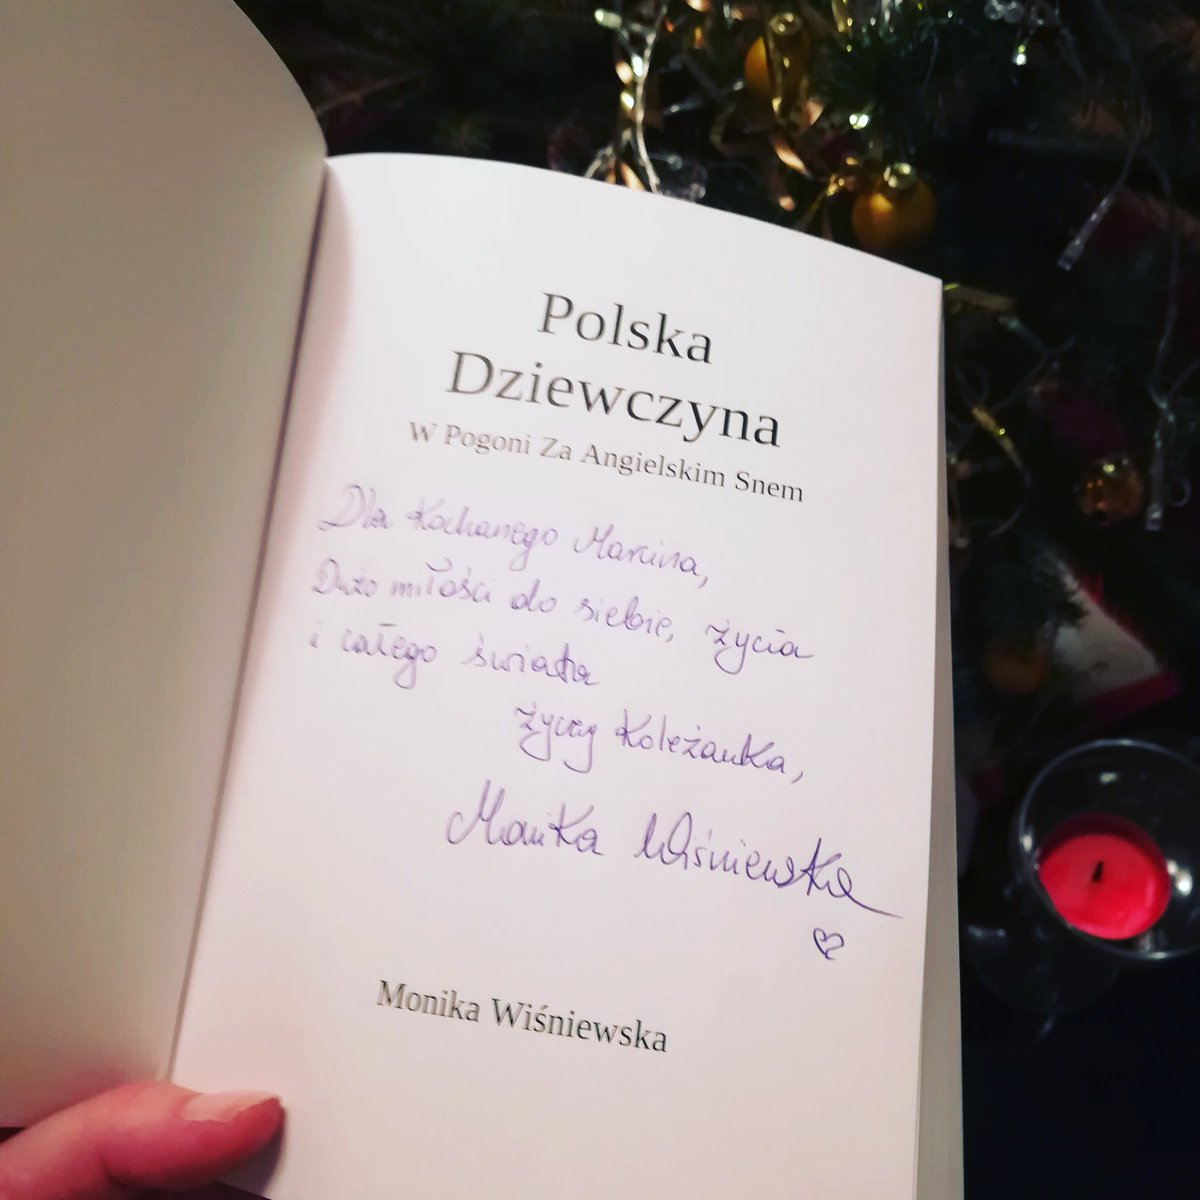 Another dedication for a school friend :) who would have thought I would write a book one day #autograph https://t.co/21WLGNaoLi